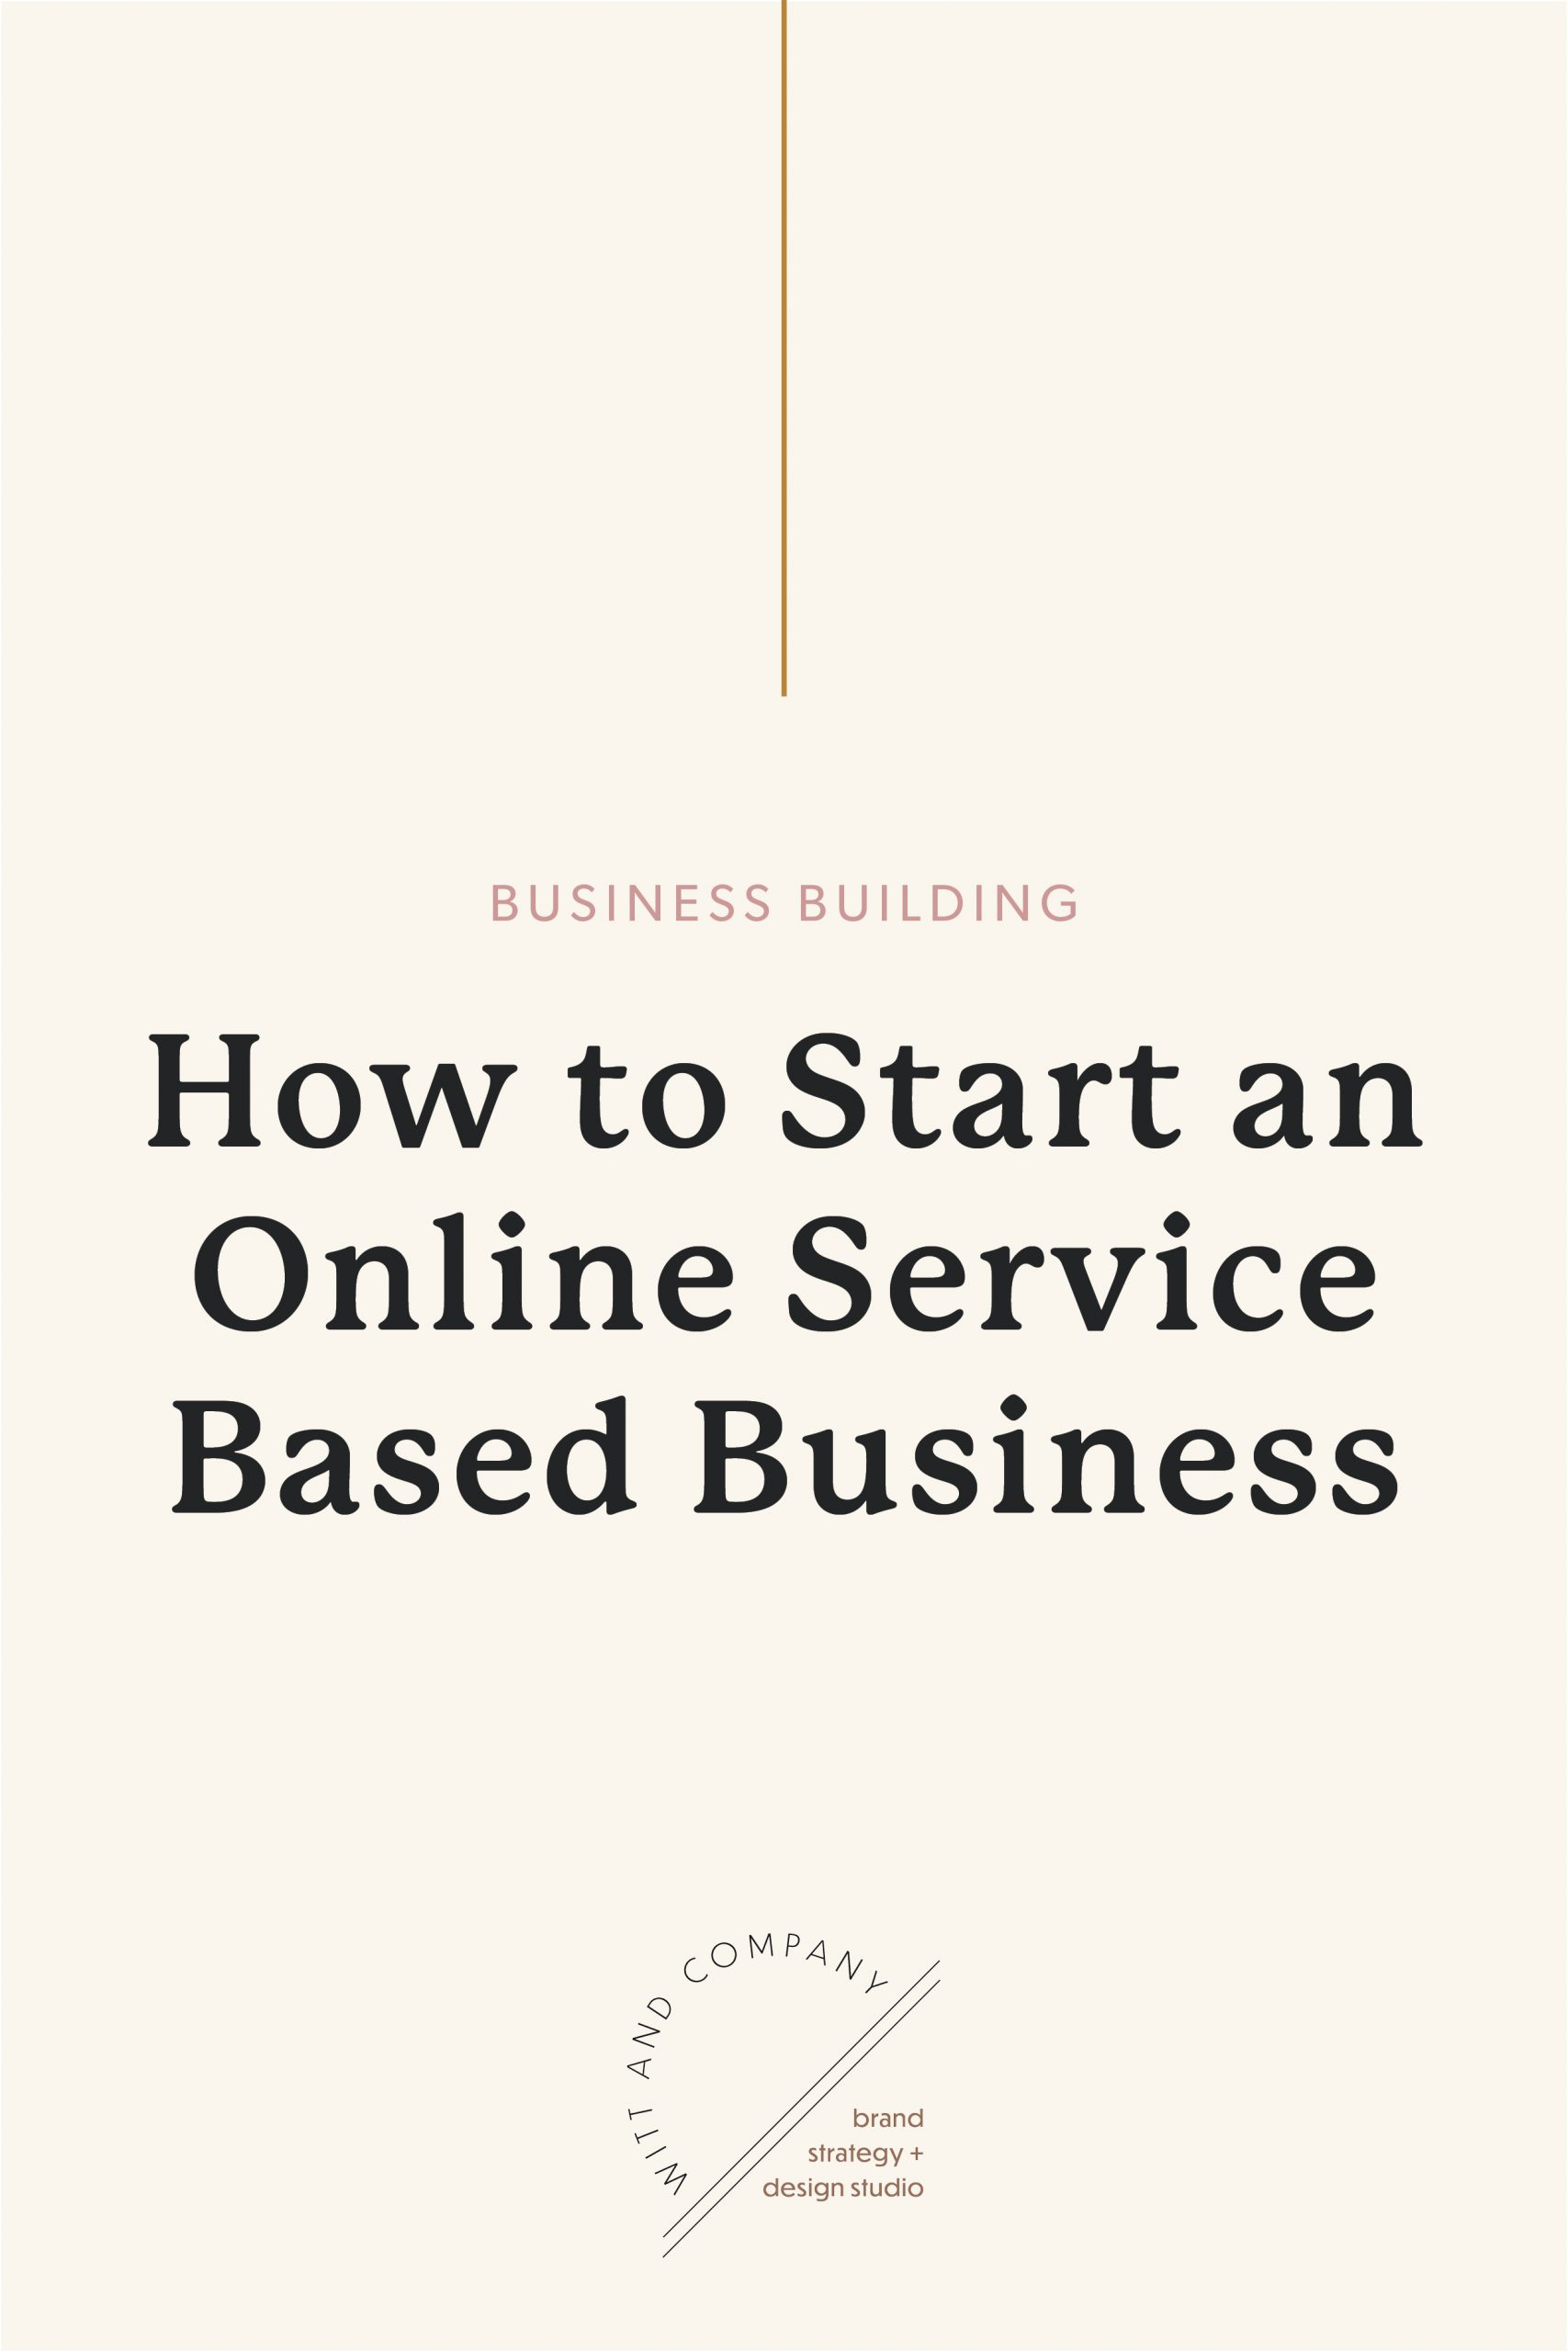 Step One: How to Start a Service Based Business Online